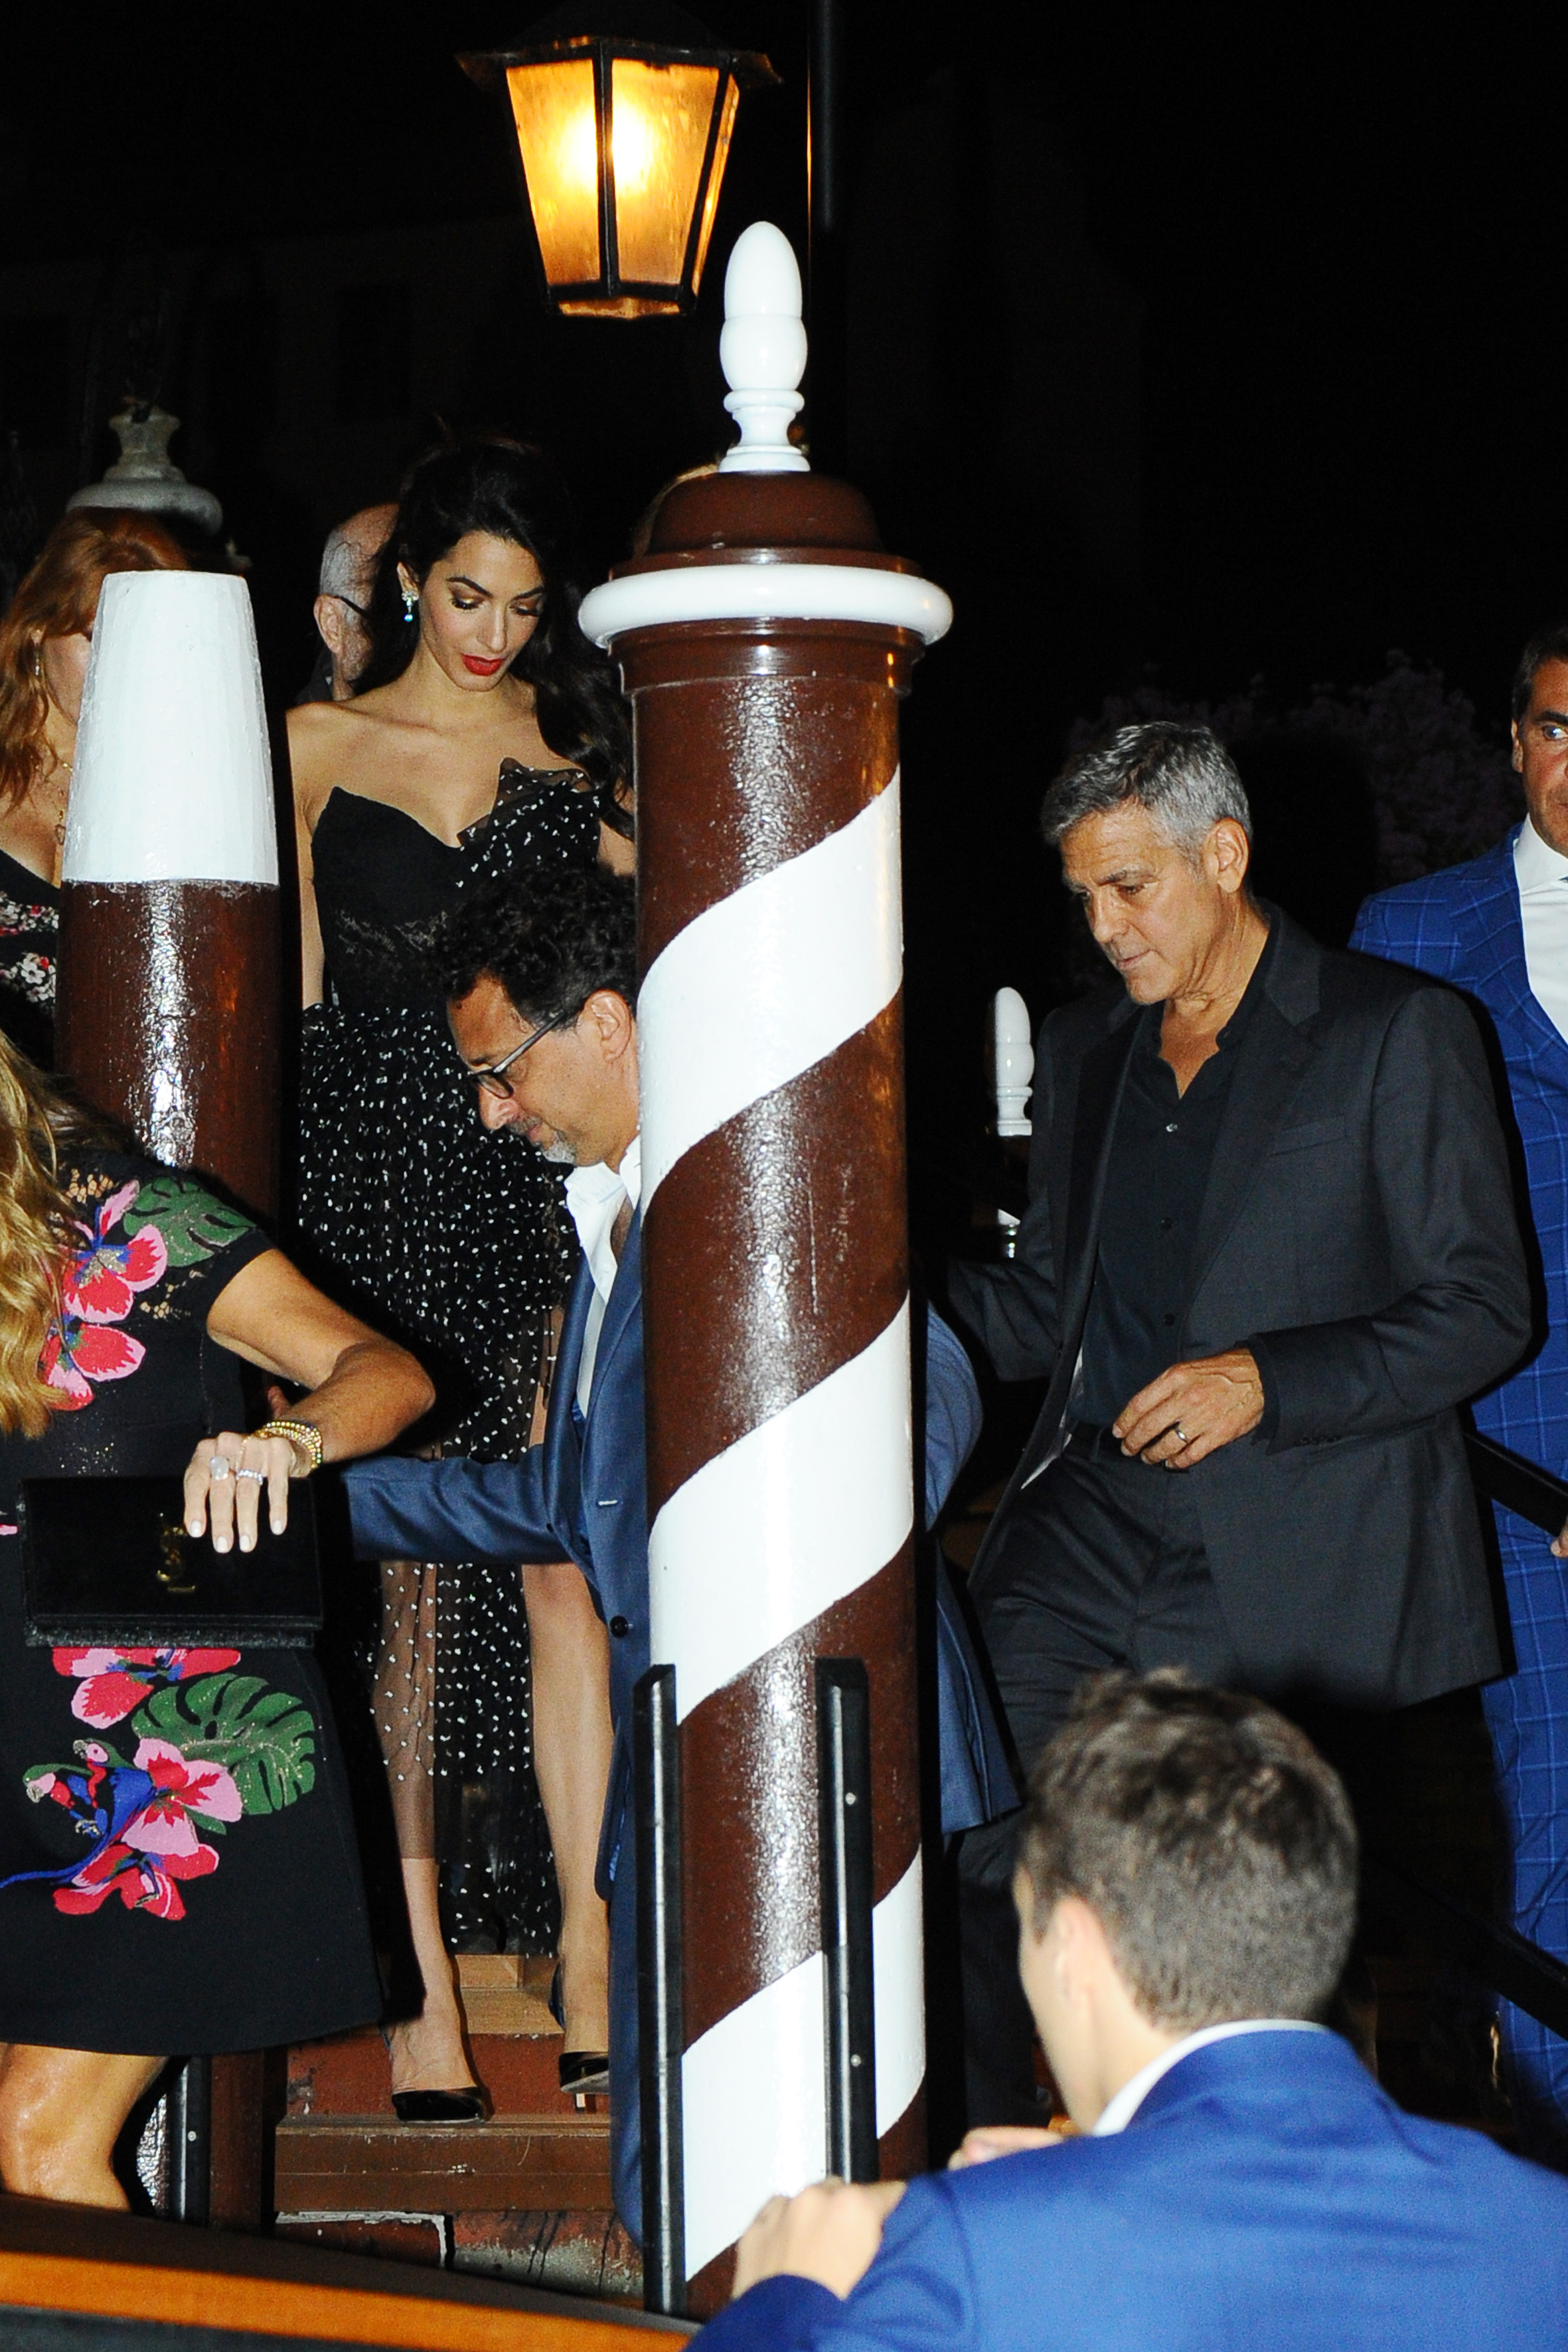 George Clooney and Amal Alamuddin are seen leaving their hotel on August 31, 2017 in Venice, Italy. <P> Pictured: George Clooney and Amal Alamuddin <B>Ref: SPL1566353  310817  </B><BR/> Picture by: Splash News<BR/> </P><P> <B>Splash News and Pictures</B><BR/> Los Angeles:310-821-2666<BR/> New York:212-619-2666<BR/> London:870-934-2666<BR/> <span id=